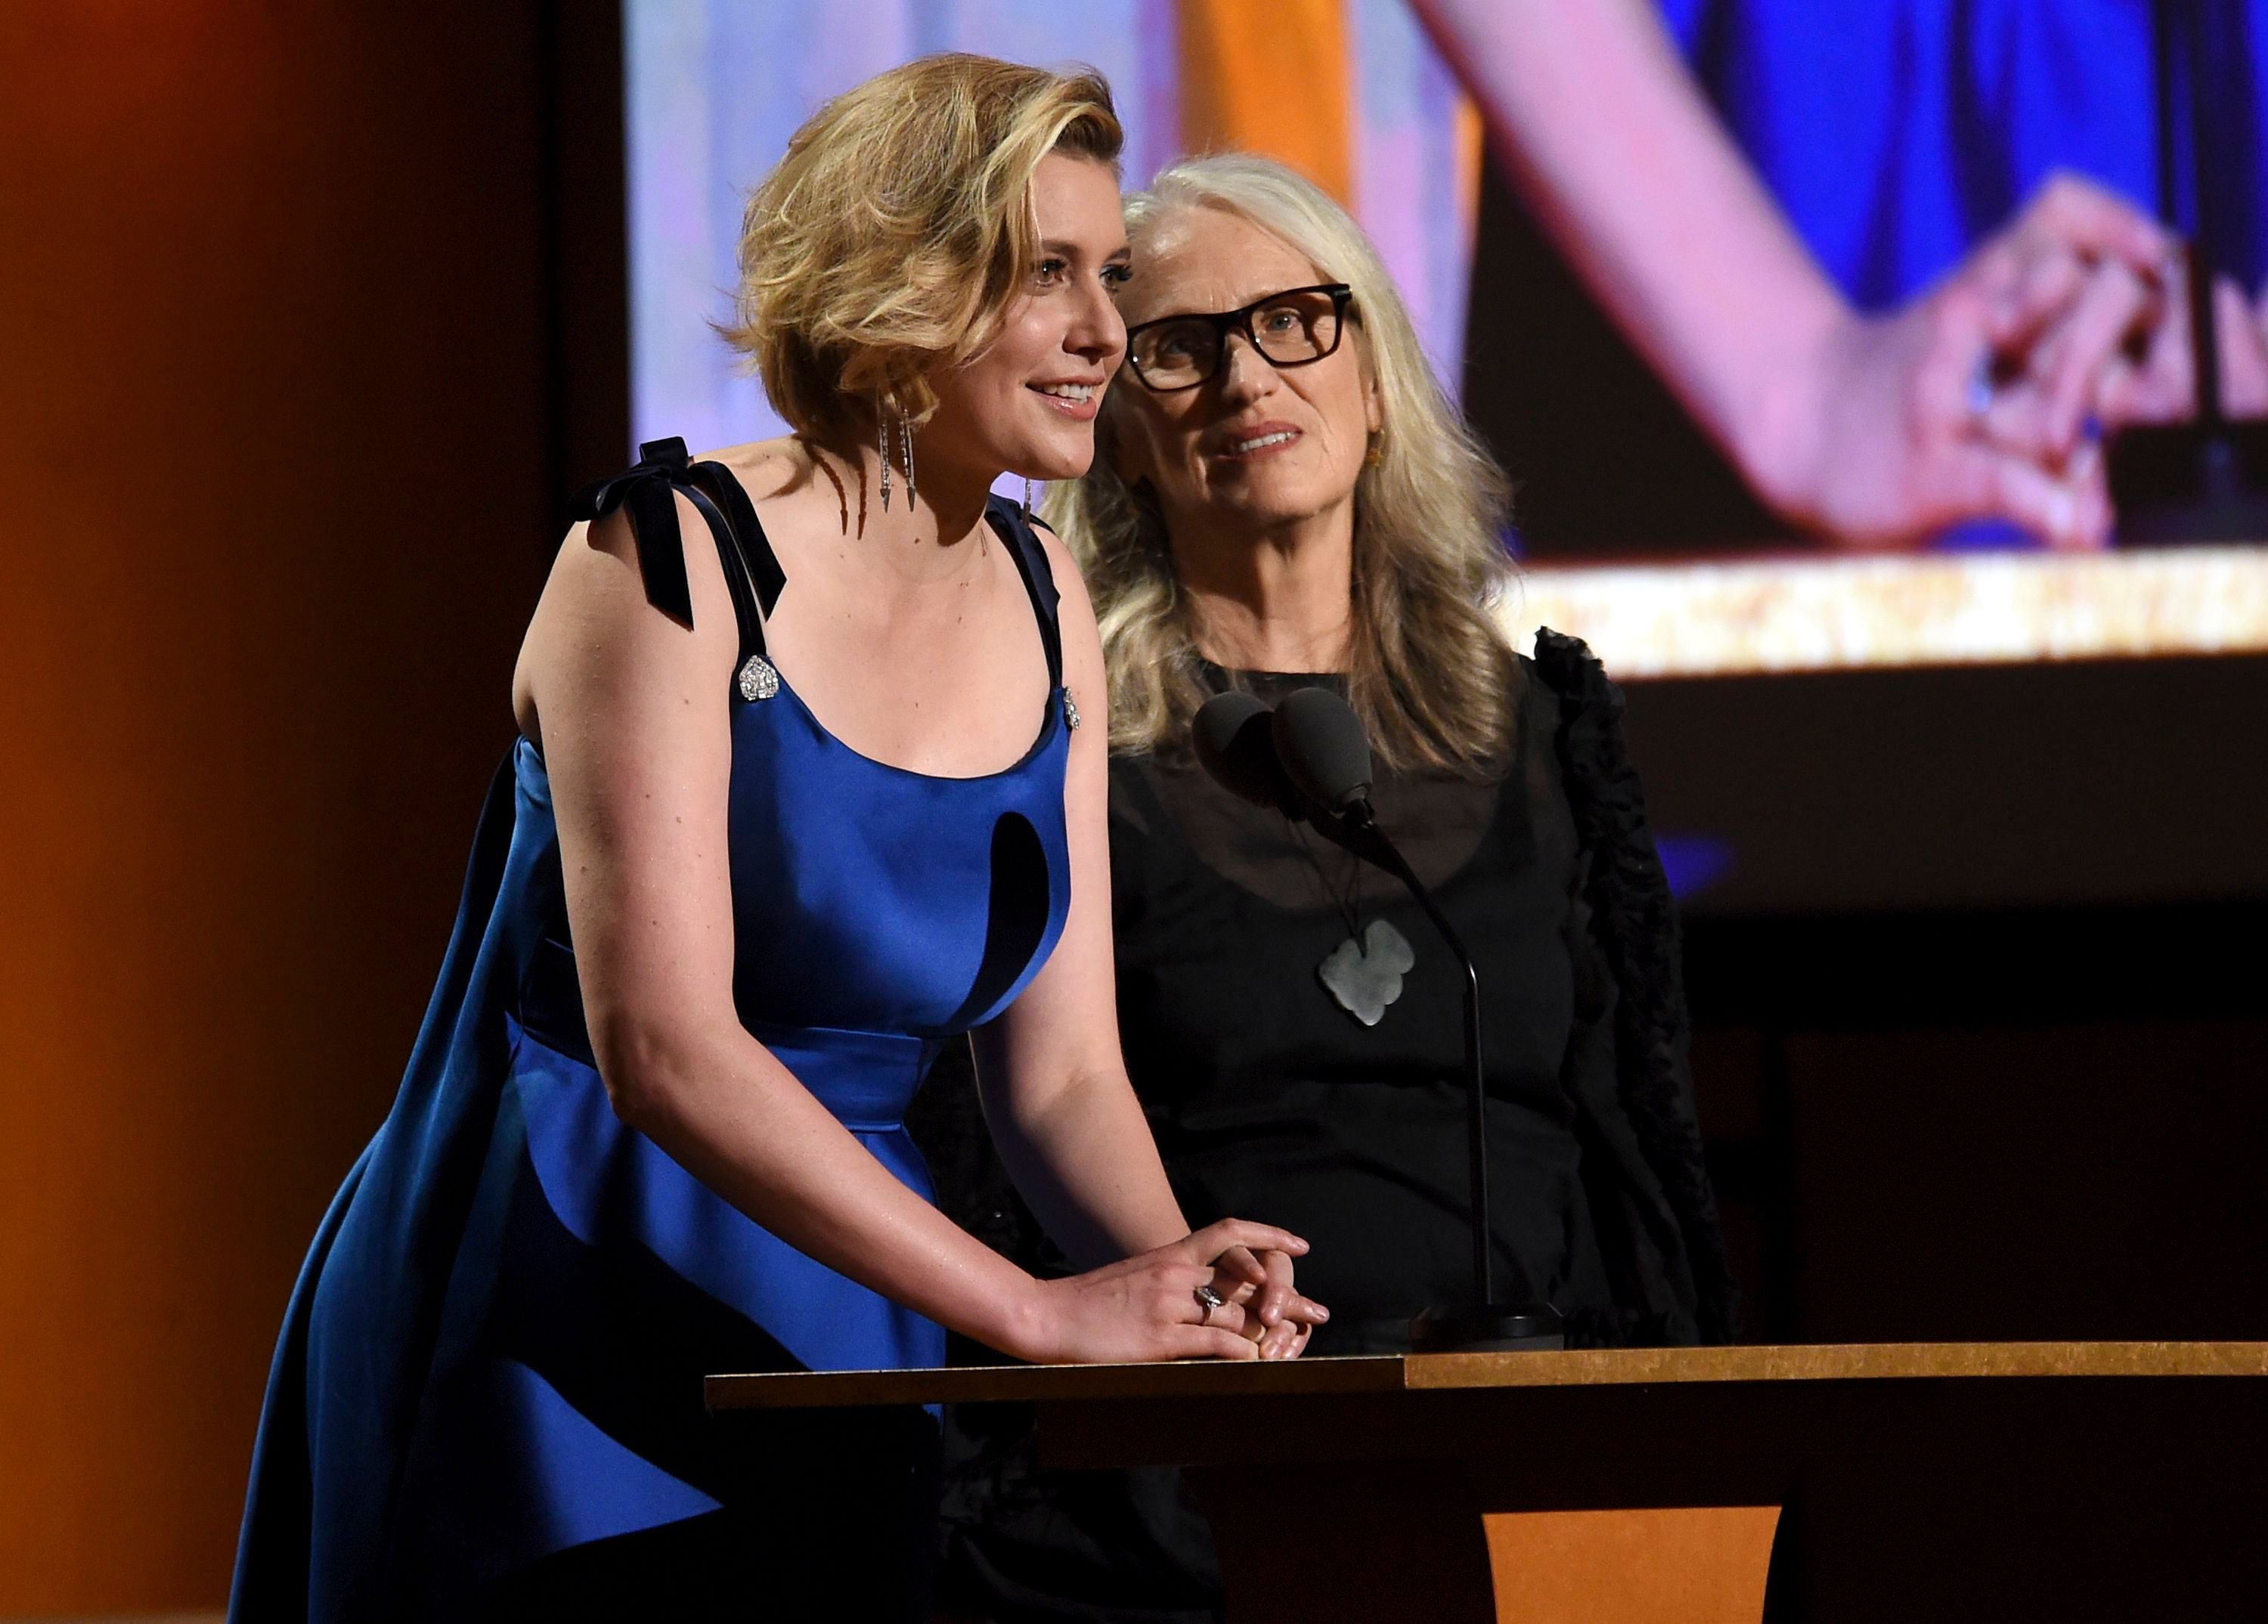 Greta Gerwig, Jane Campion. Greta Gerwig, left, and Jane Campion speak at the Governors Awards, at the Dolby Ballroom in Los Angeles2019 Governors Awards - Show, Los Angeles, USA - 27 Oct 2019